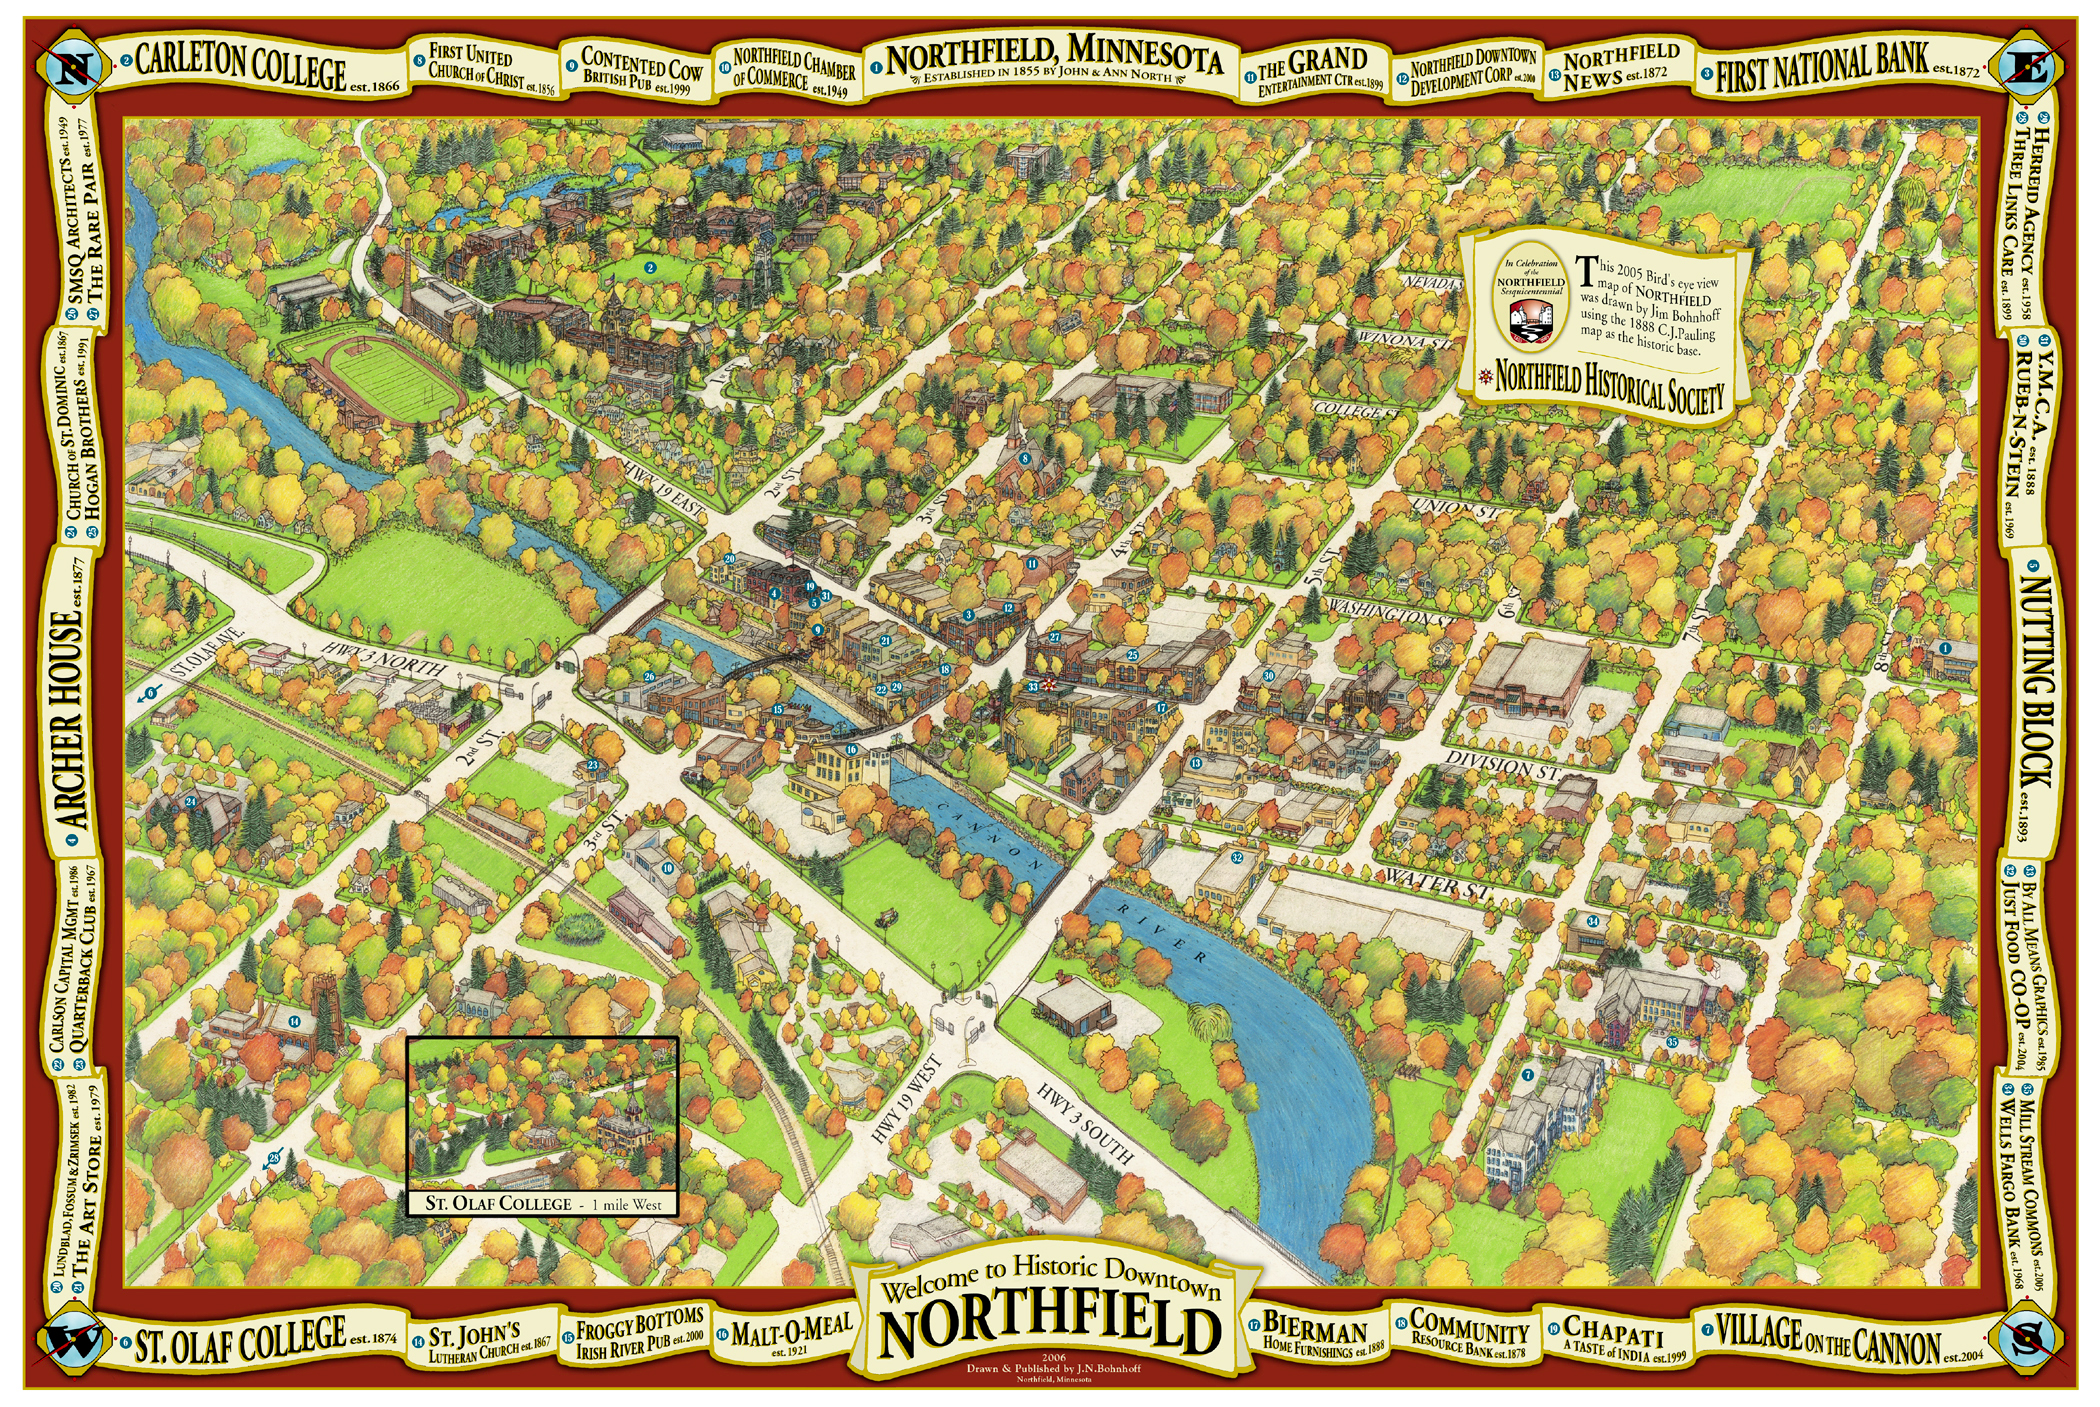 Jim Bohnhoff Design - Birds Eye Map of Northfield Minnesota